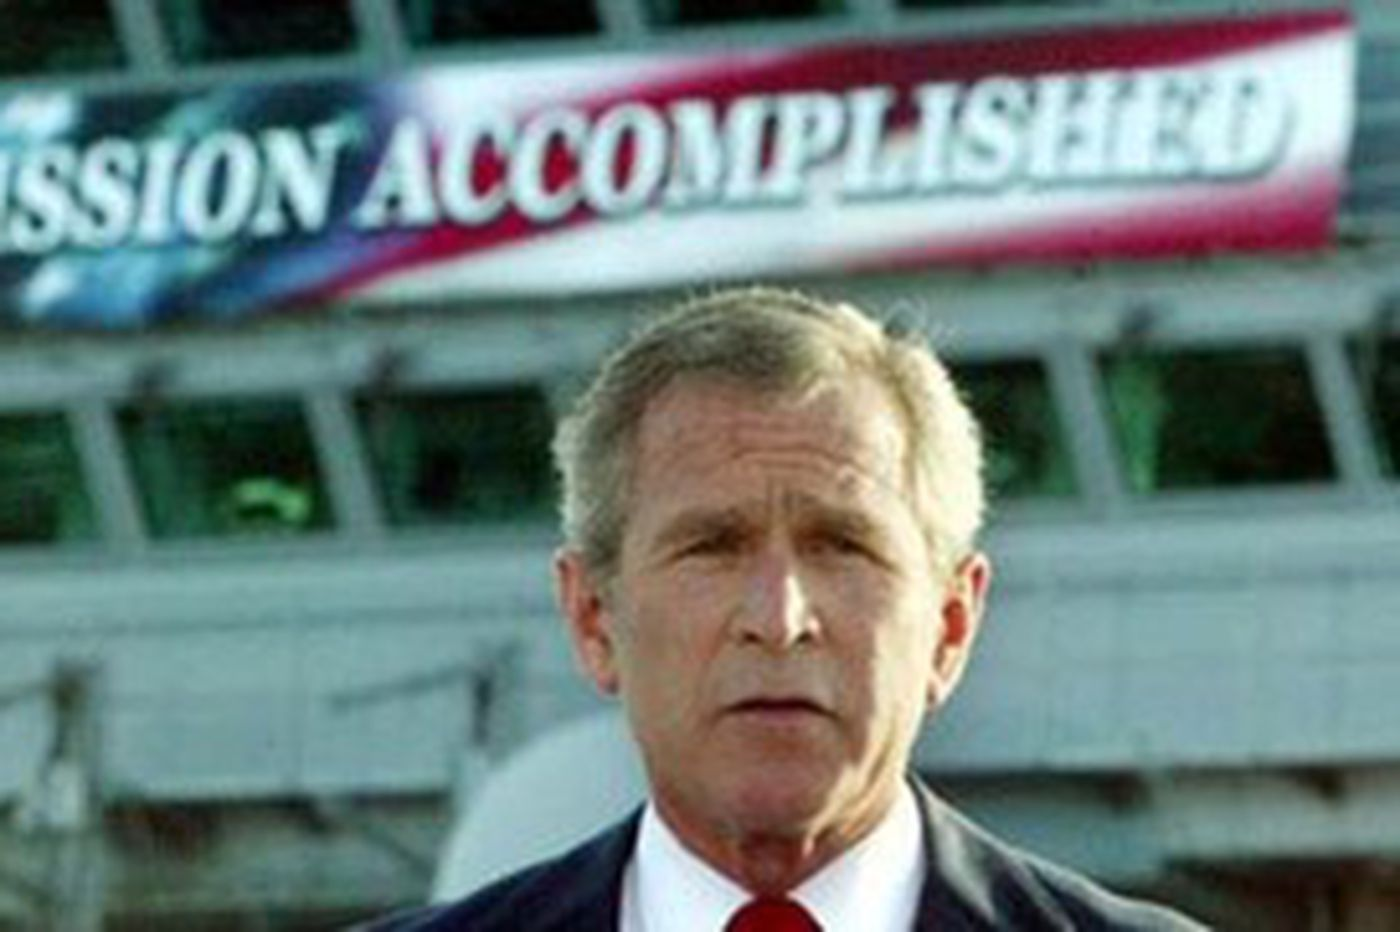 MISSION ACCOMPLISHED? NOT THEN, NOT NOW.